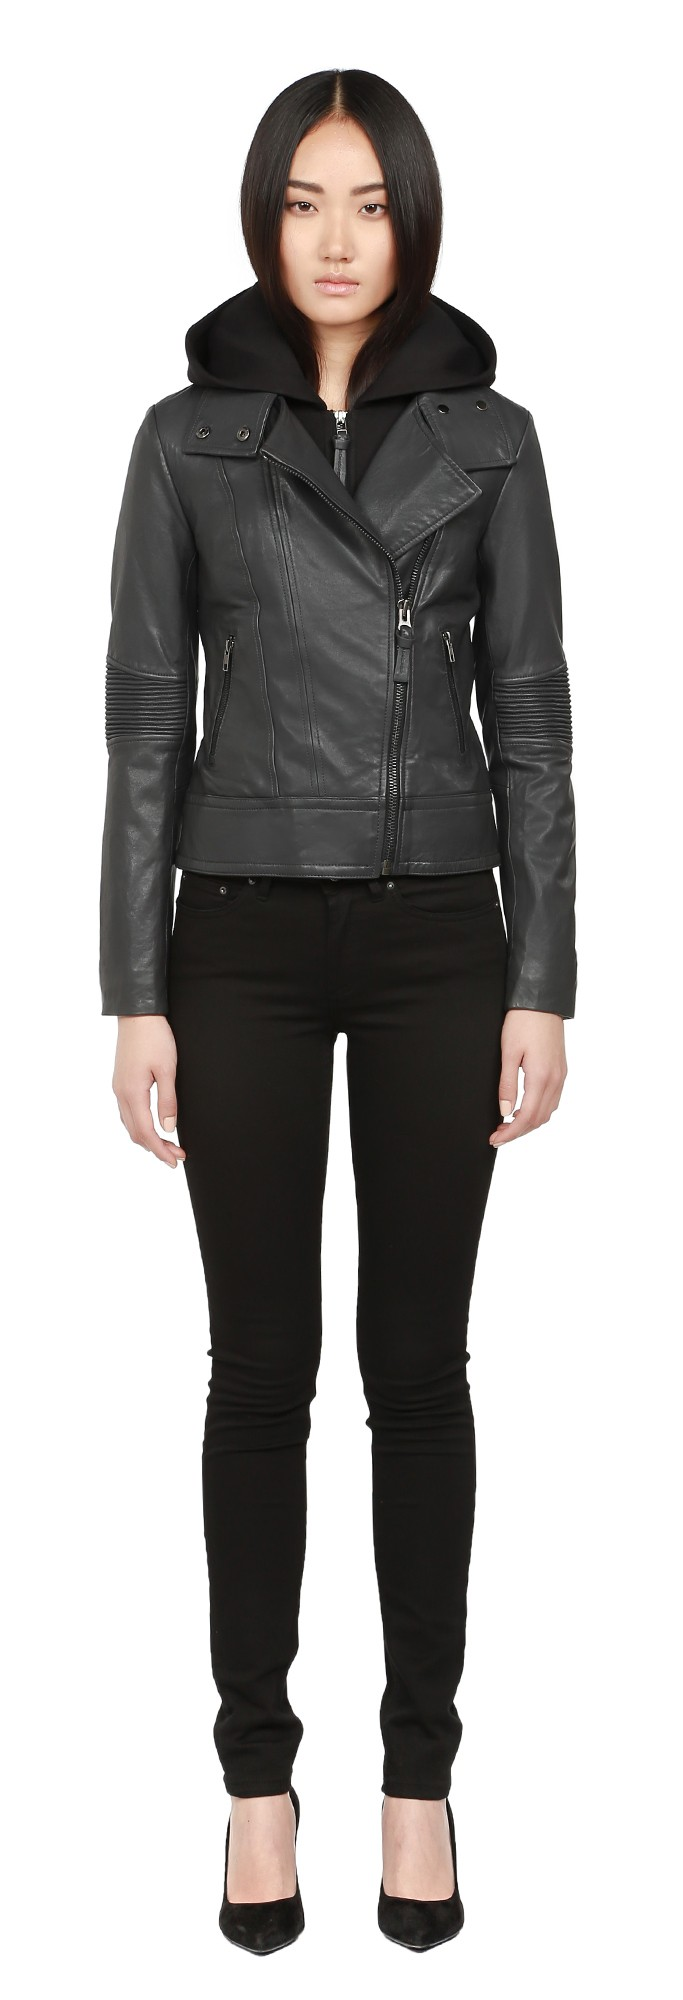 Charcoal Washed Leather Moto Jacket With Hood Mackage Women